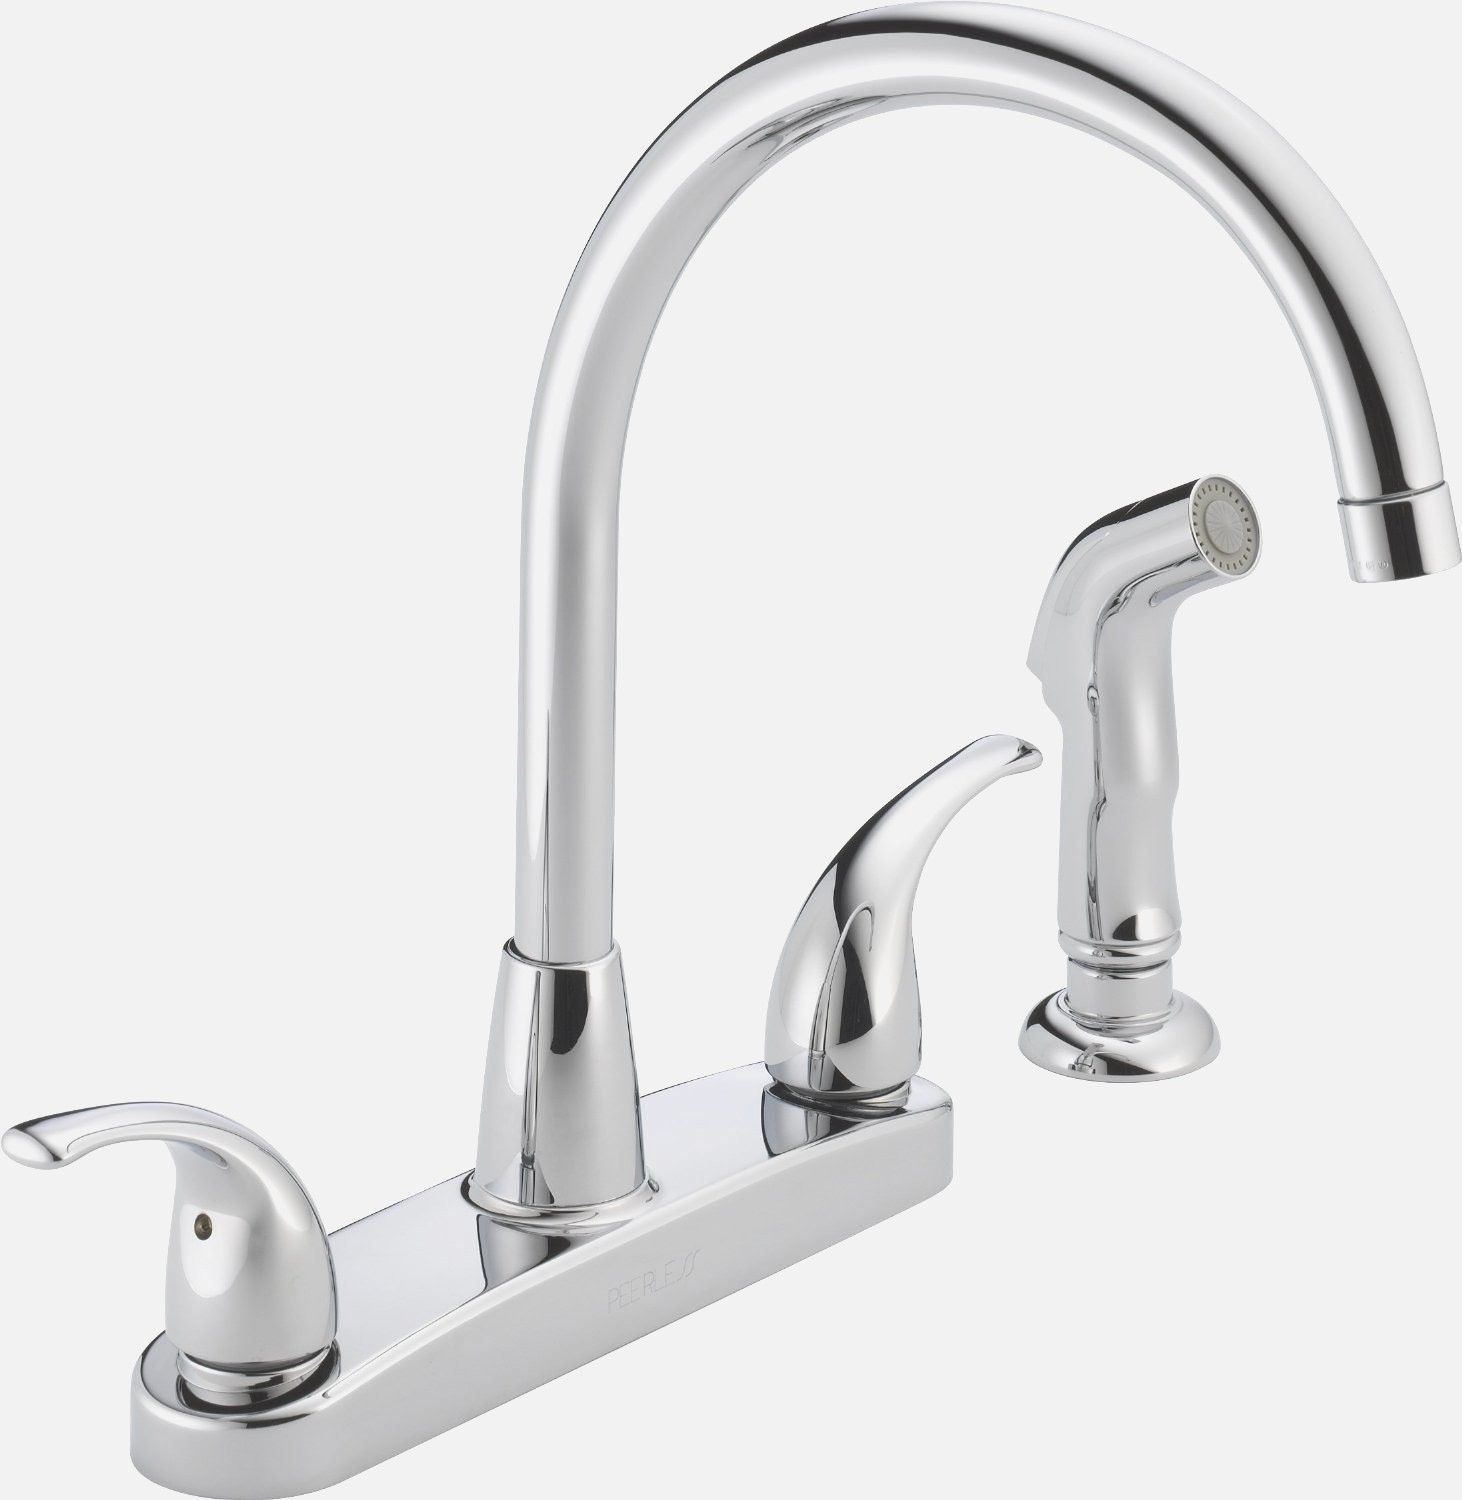 Kitchen Sink Faucets At Lowes | Kitchen Sink Faucets At Lowes Delta Kitchen Sink Faucets Lowes